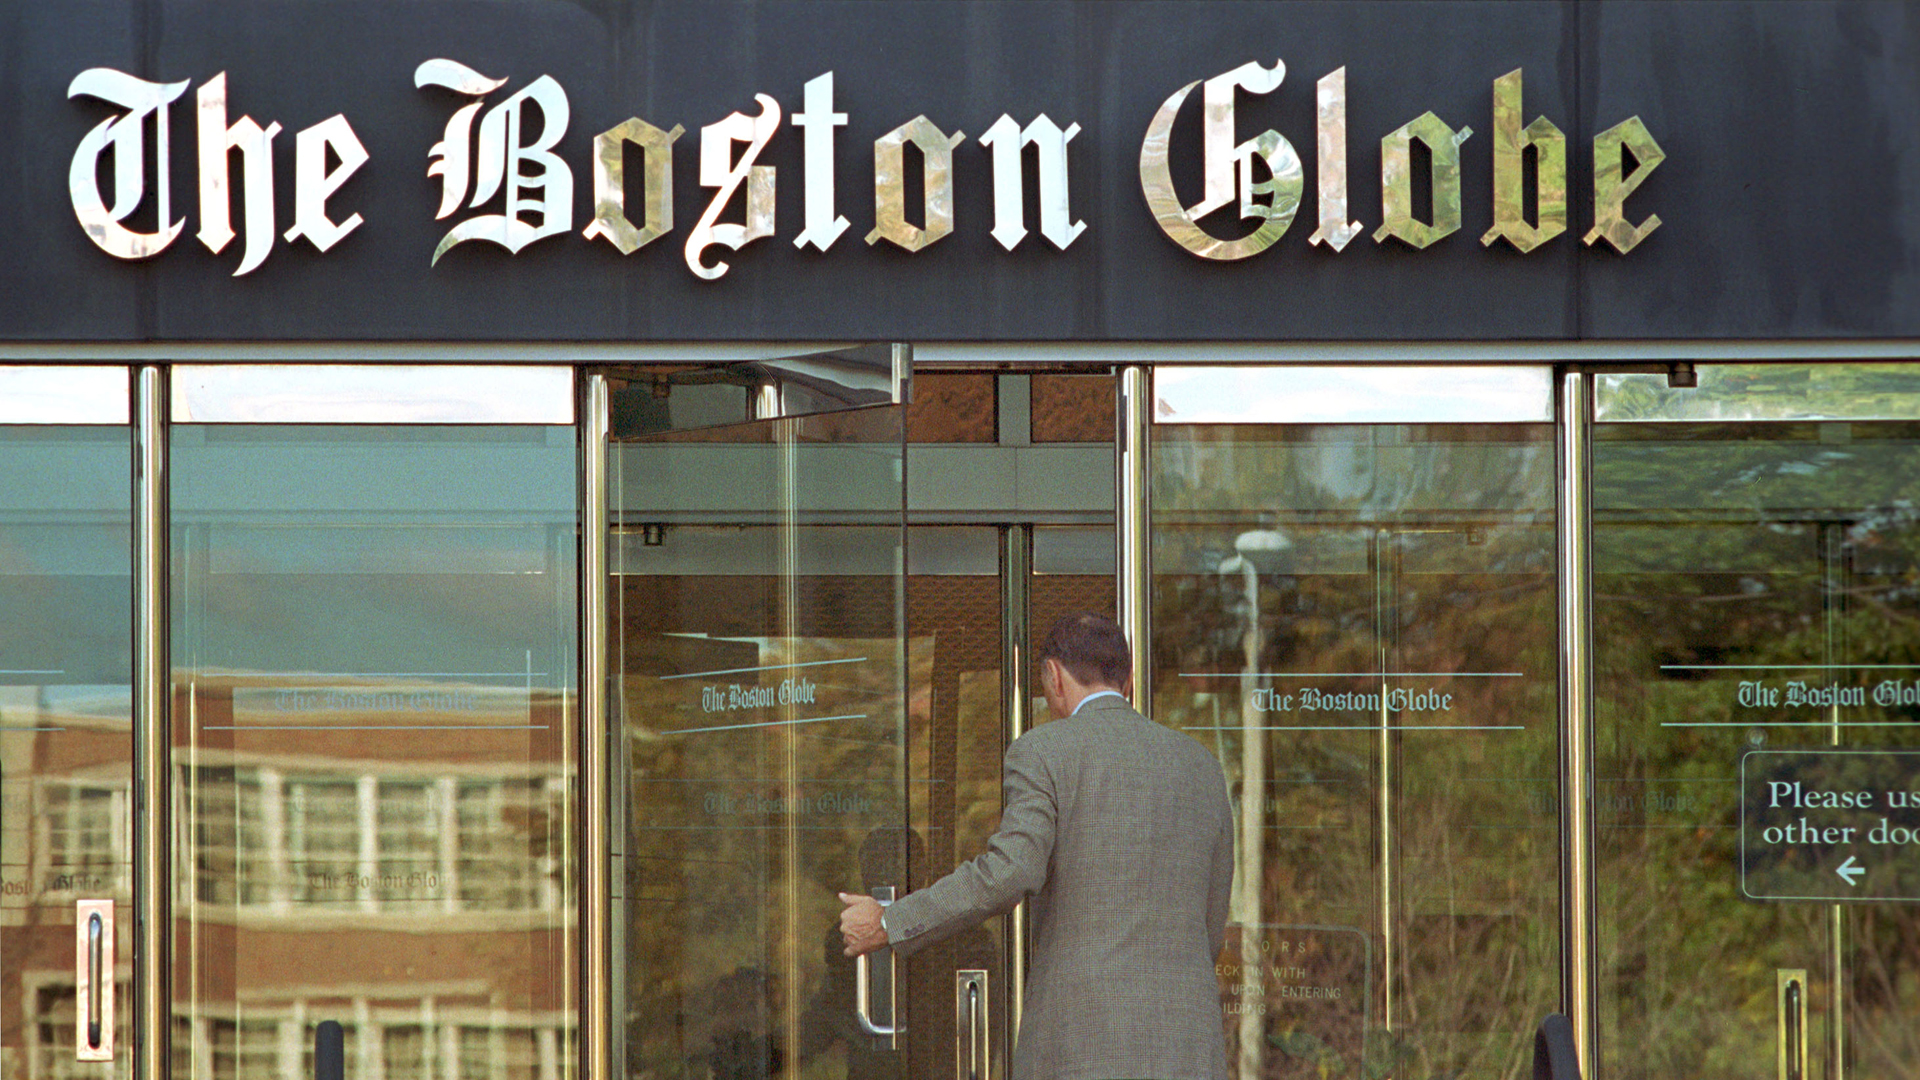 A man enters the Boston Globe newspaper building on Oct. 15, 2001 in Boston. (Credit: Christopher Pfuhl/Getty Images)